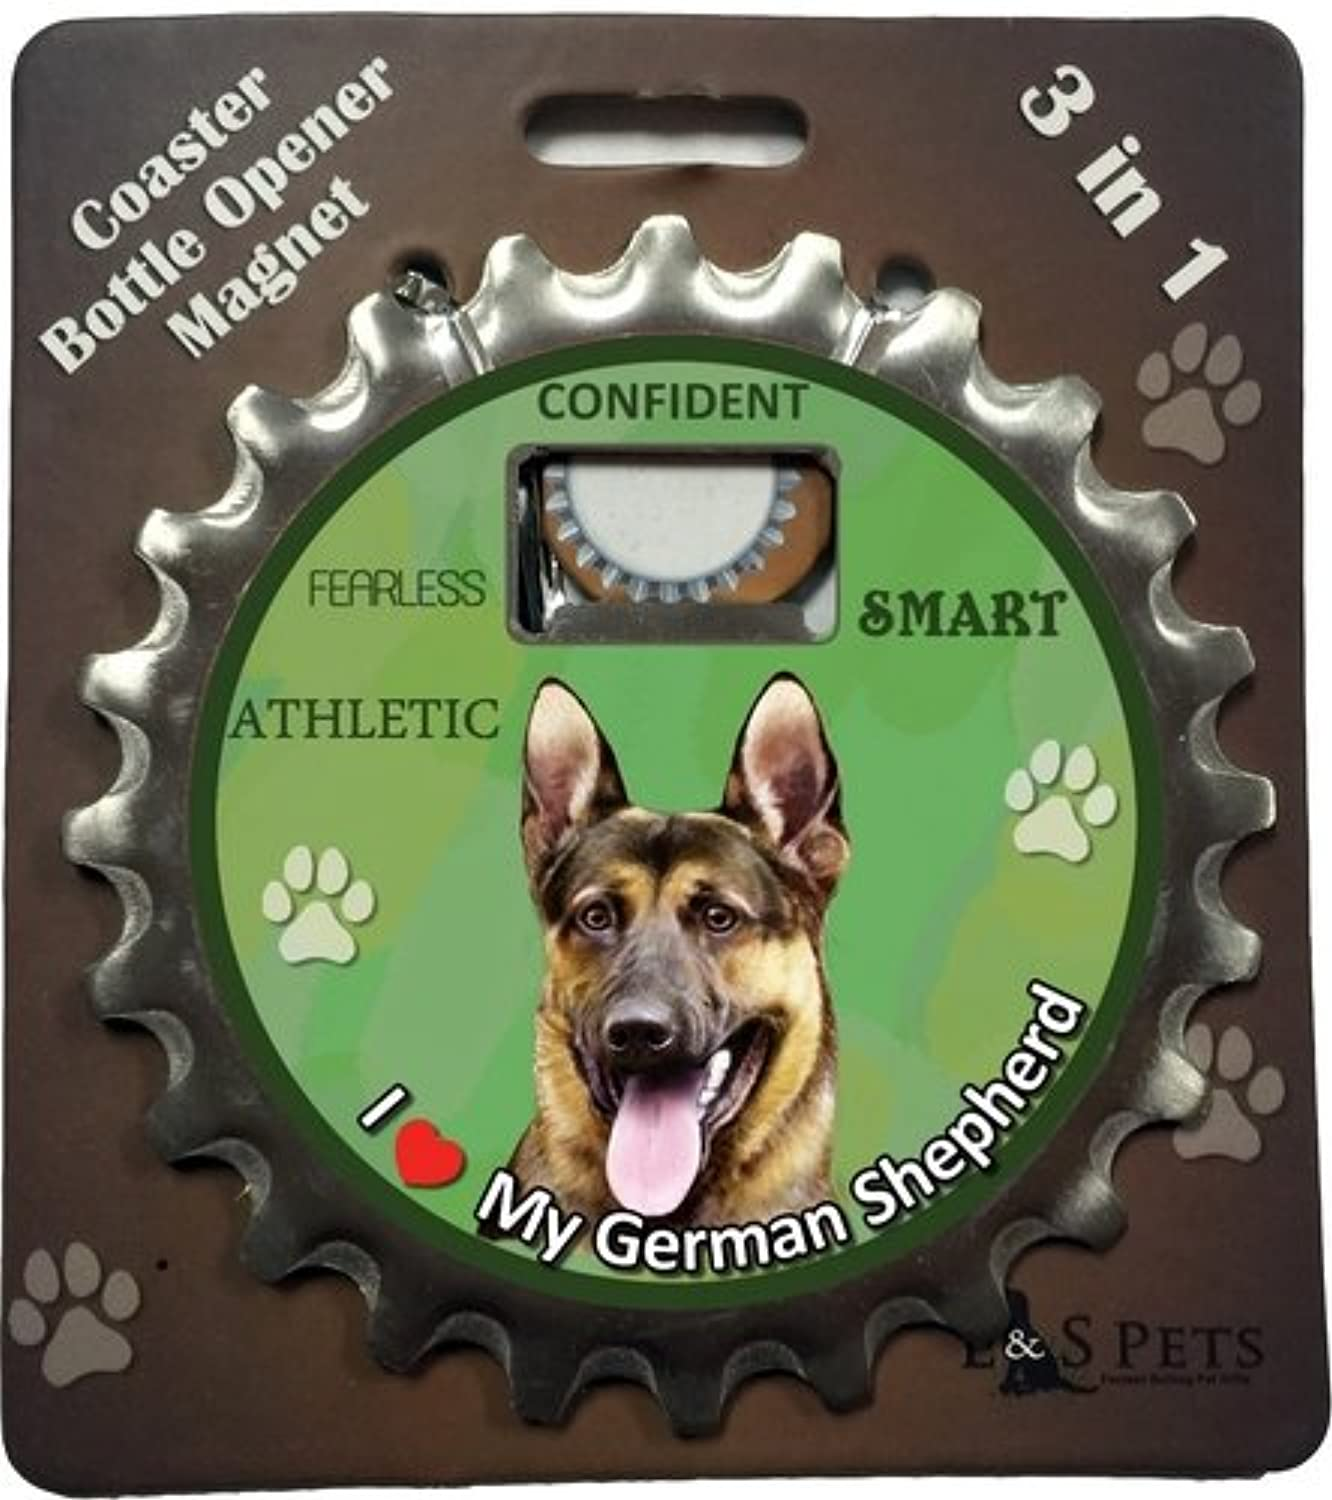 E&S Pets German Shepherd Bottle Opener, Coaster and Magnet